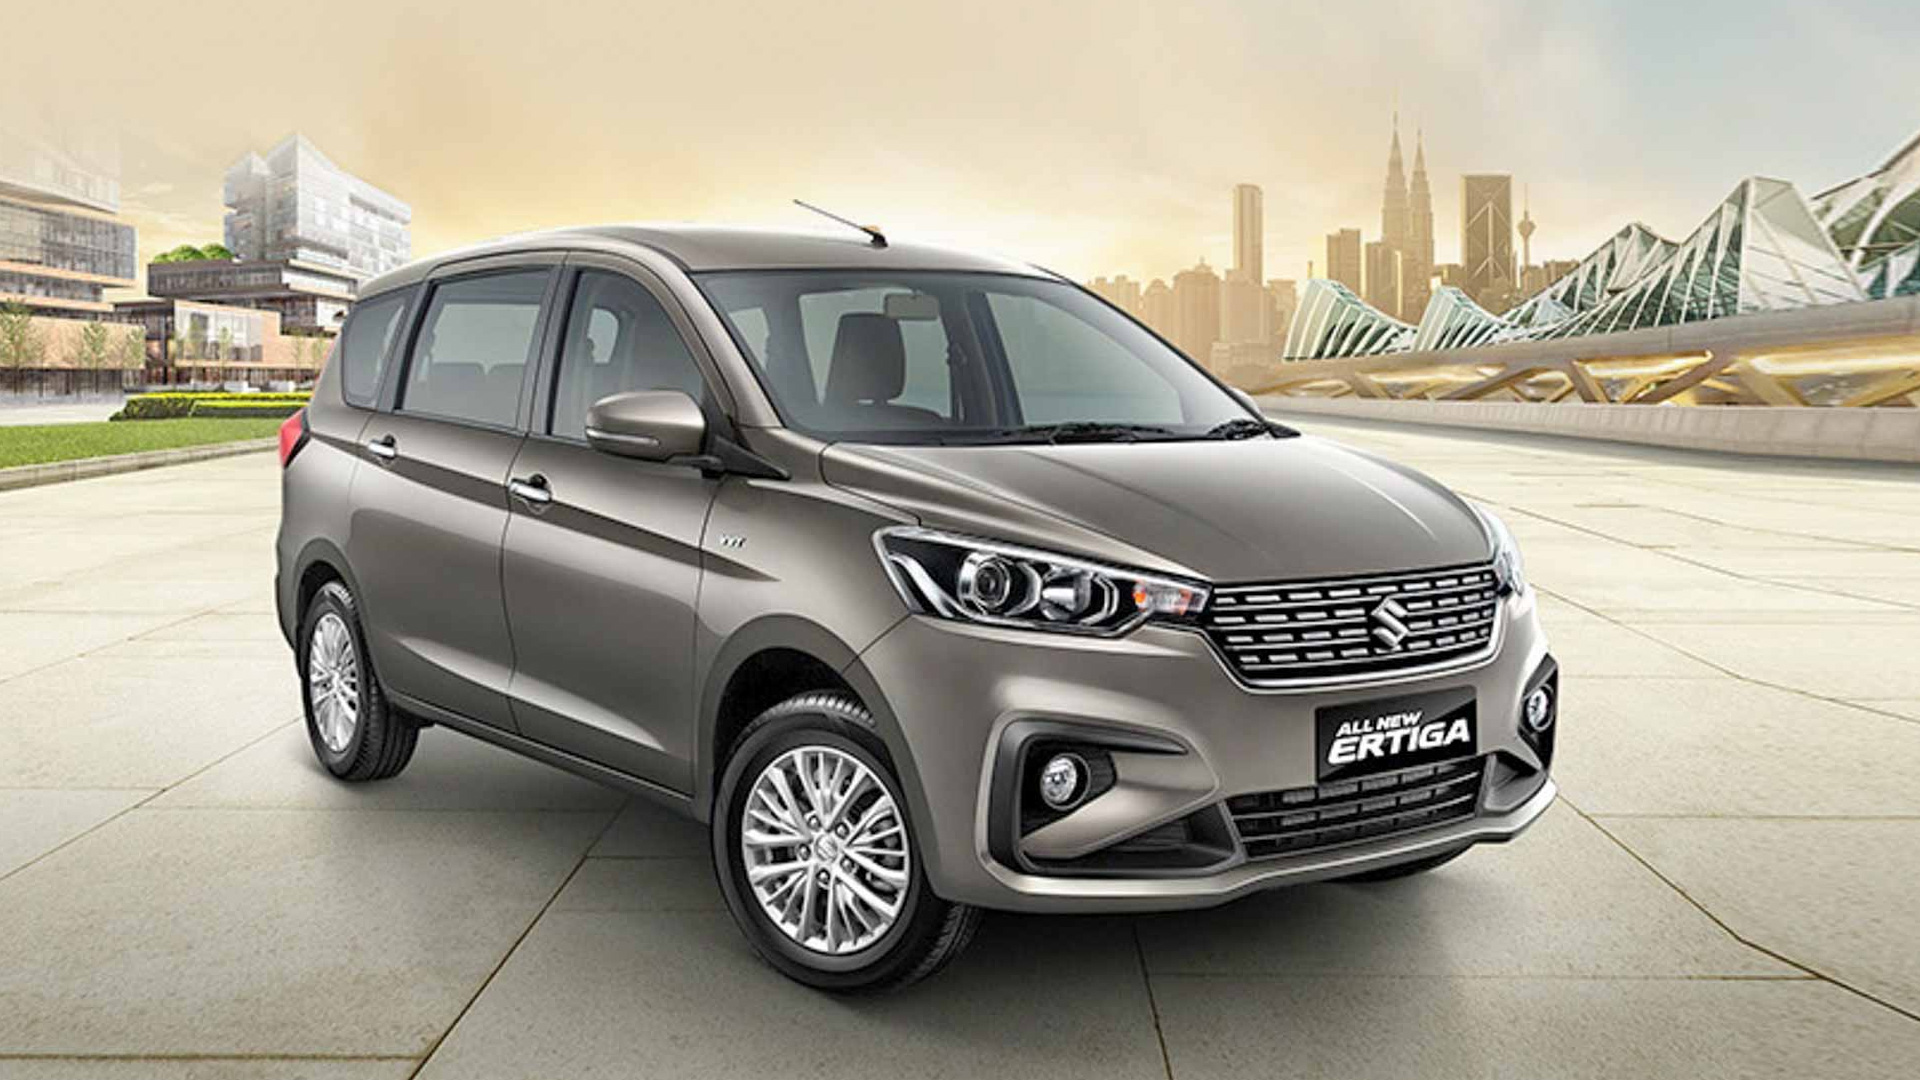 Maruti Suzuki Ertiga 2019 Price Mileage Reviews